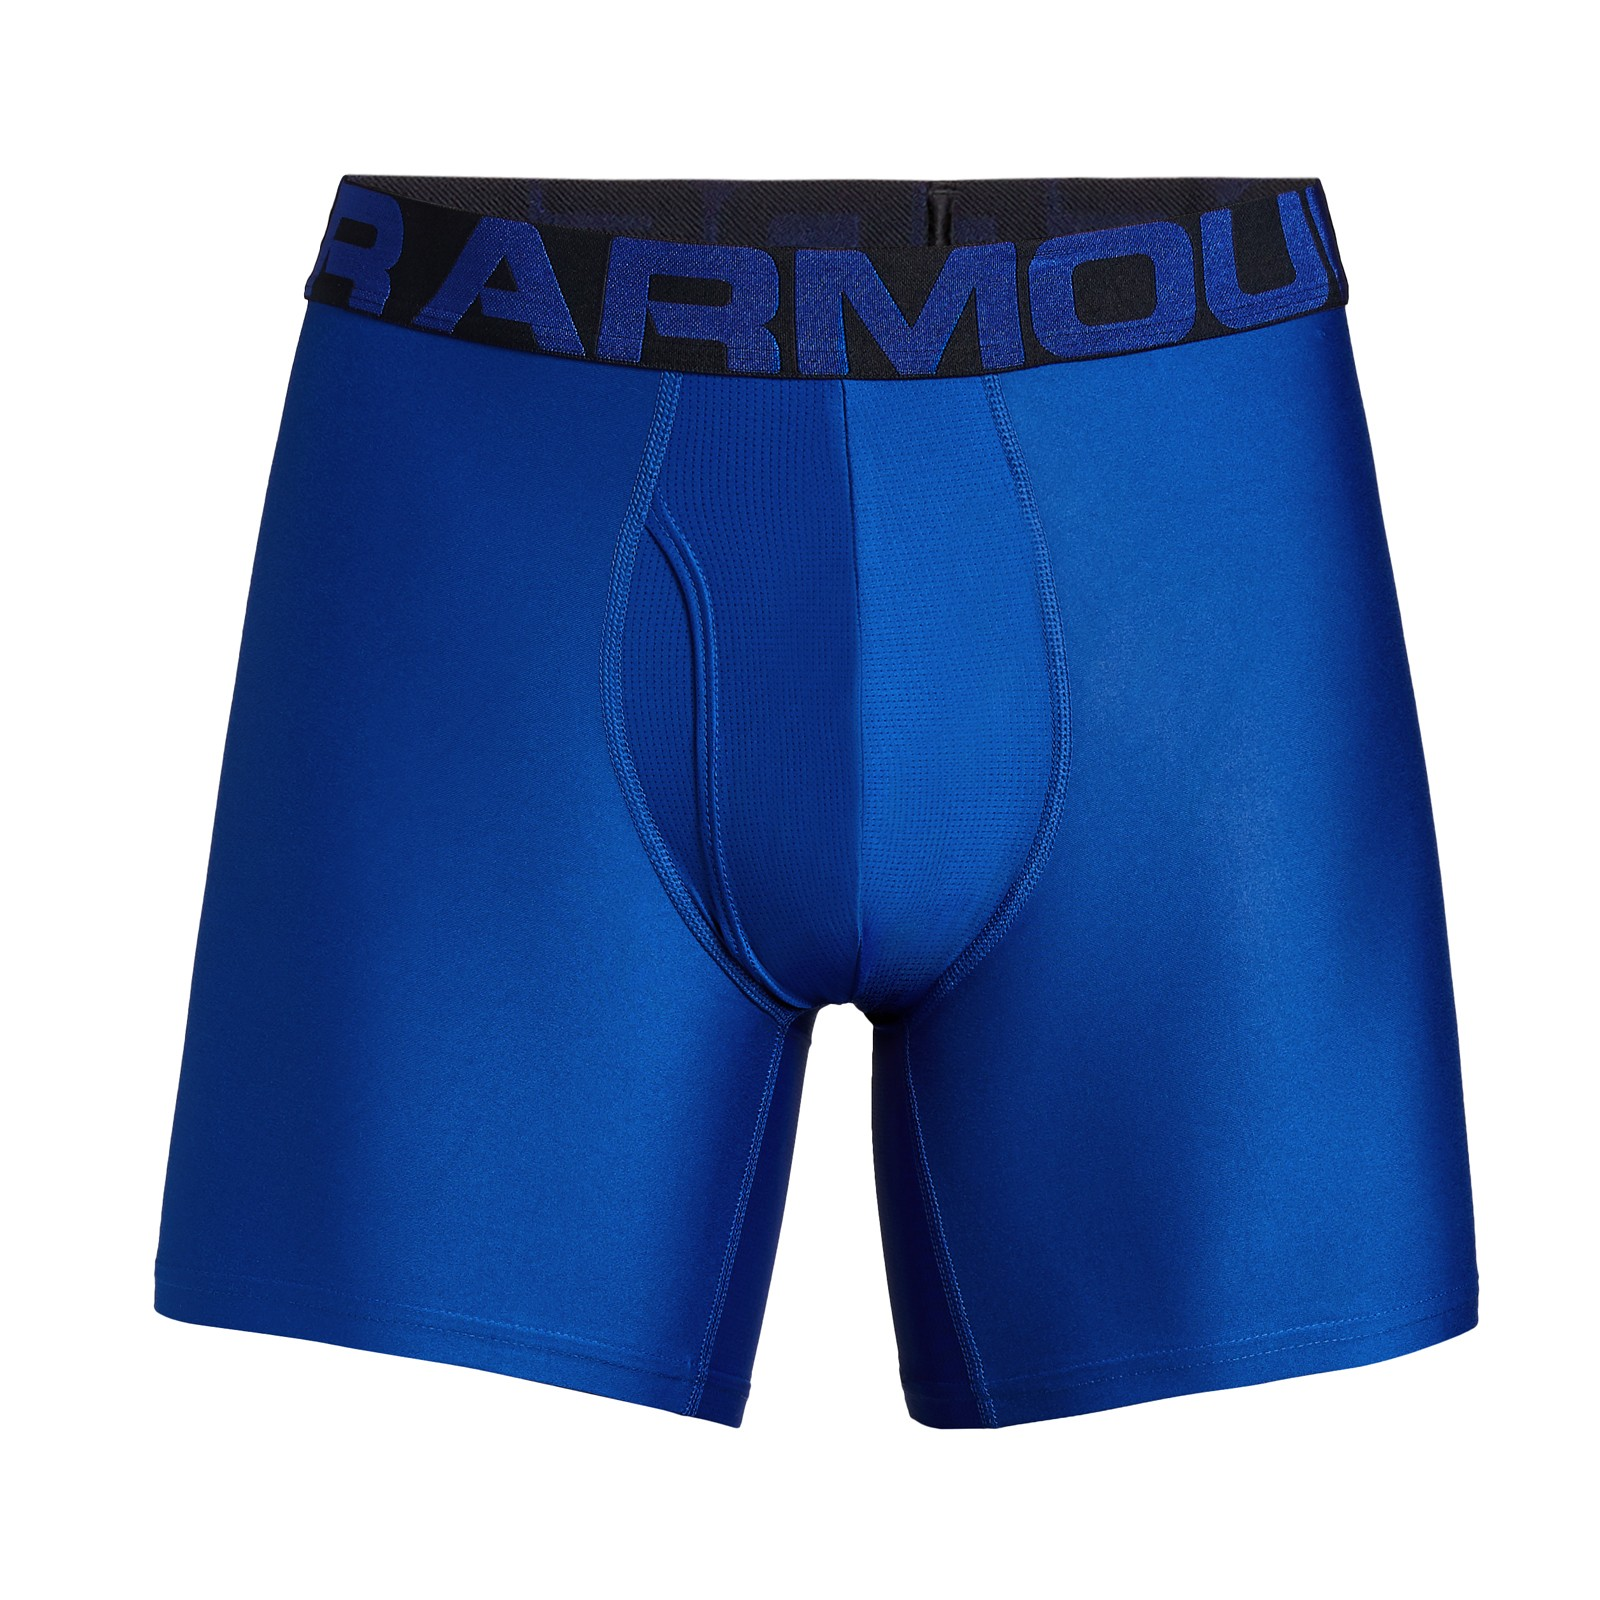 Under Armour Tech 6 Inch Boxer Briefs (2 Pack)